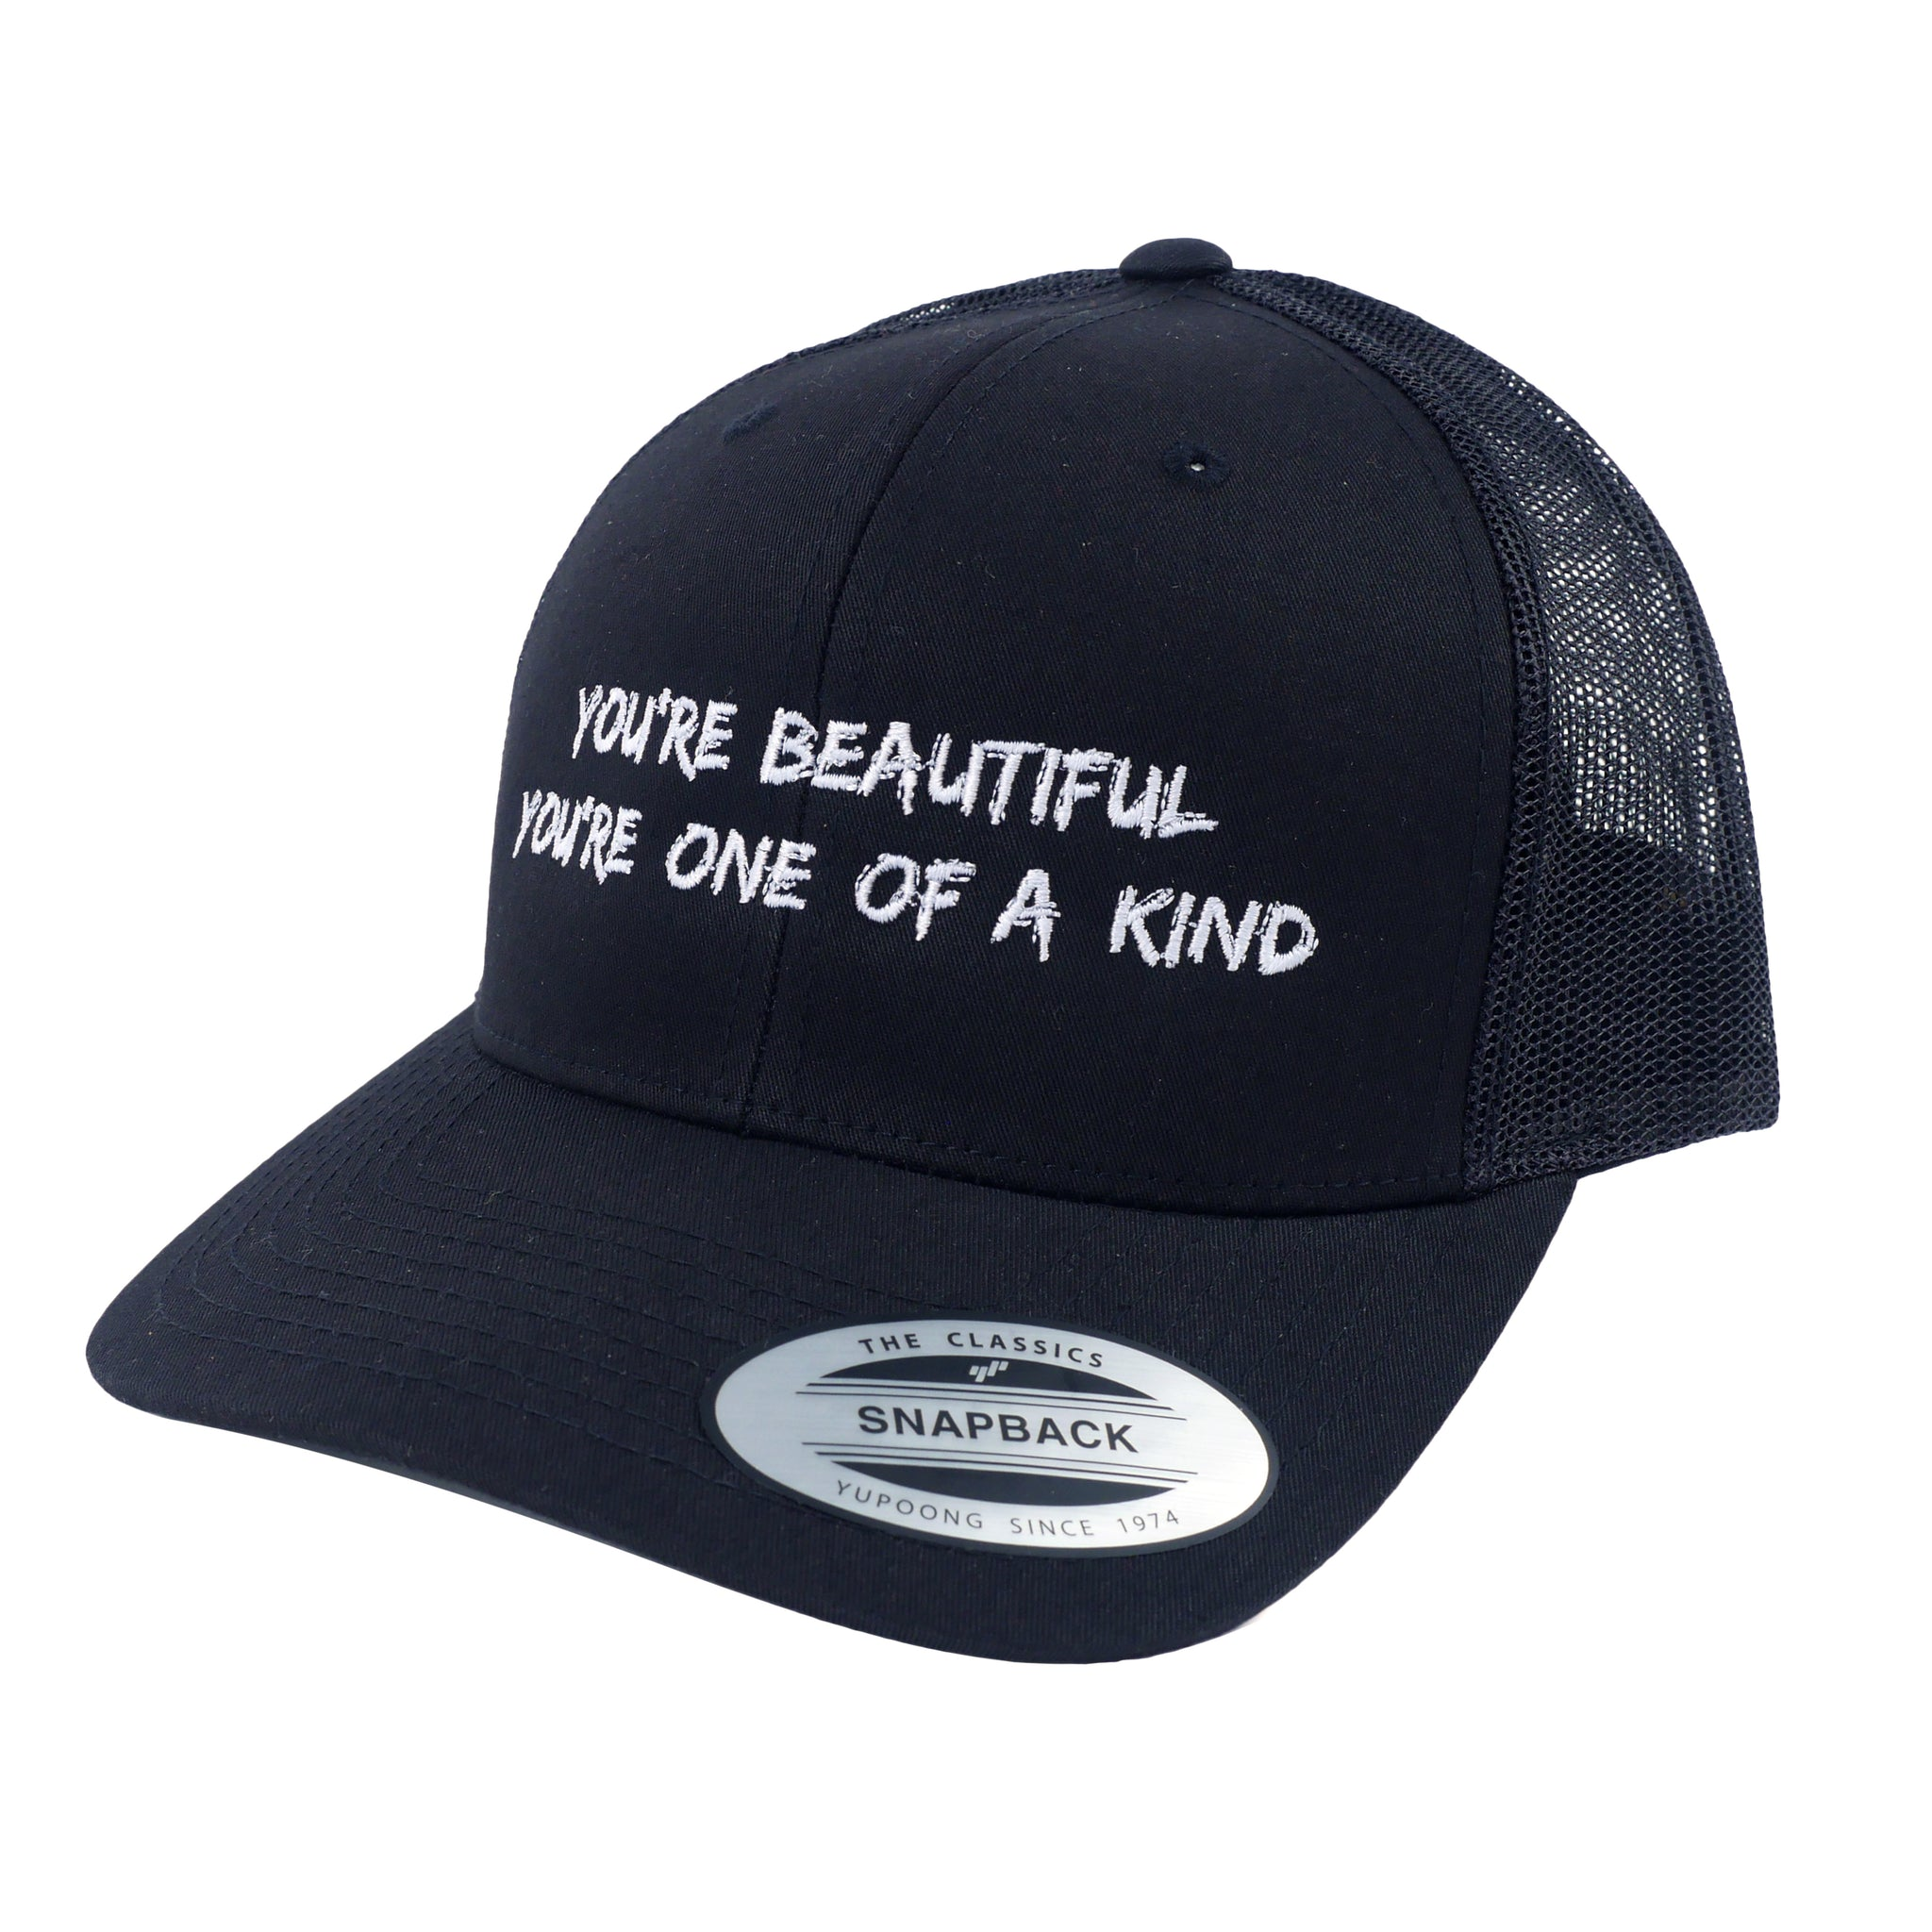 You're Beautiful, You're One of a Kind Black Snapback